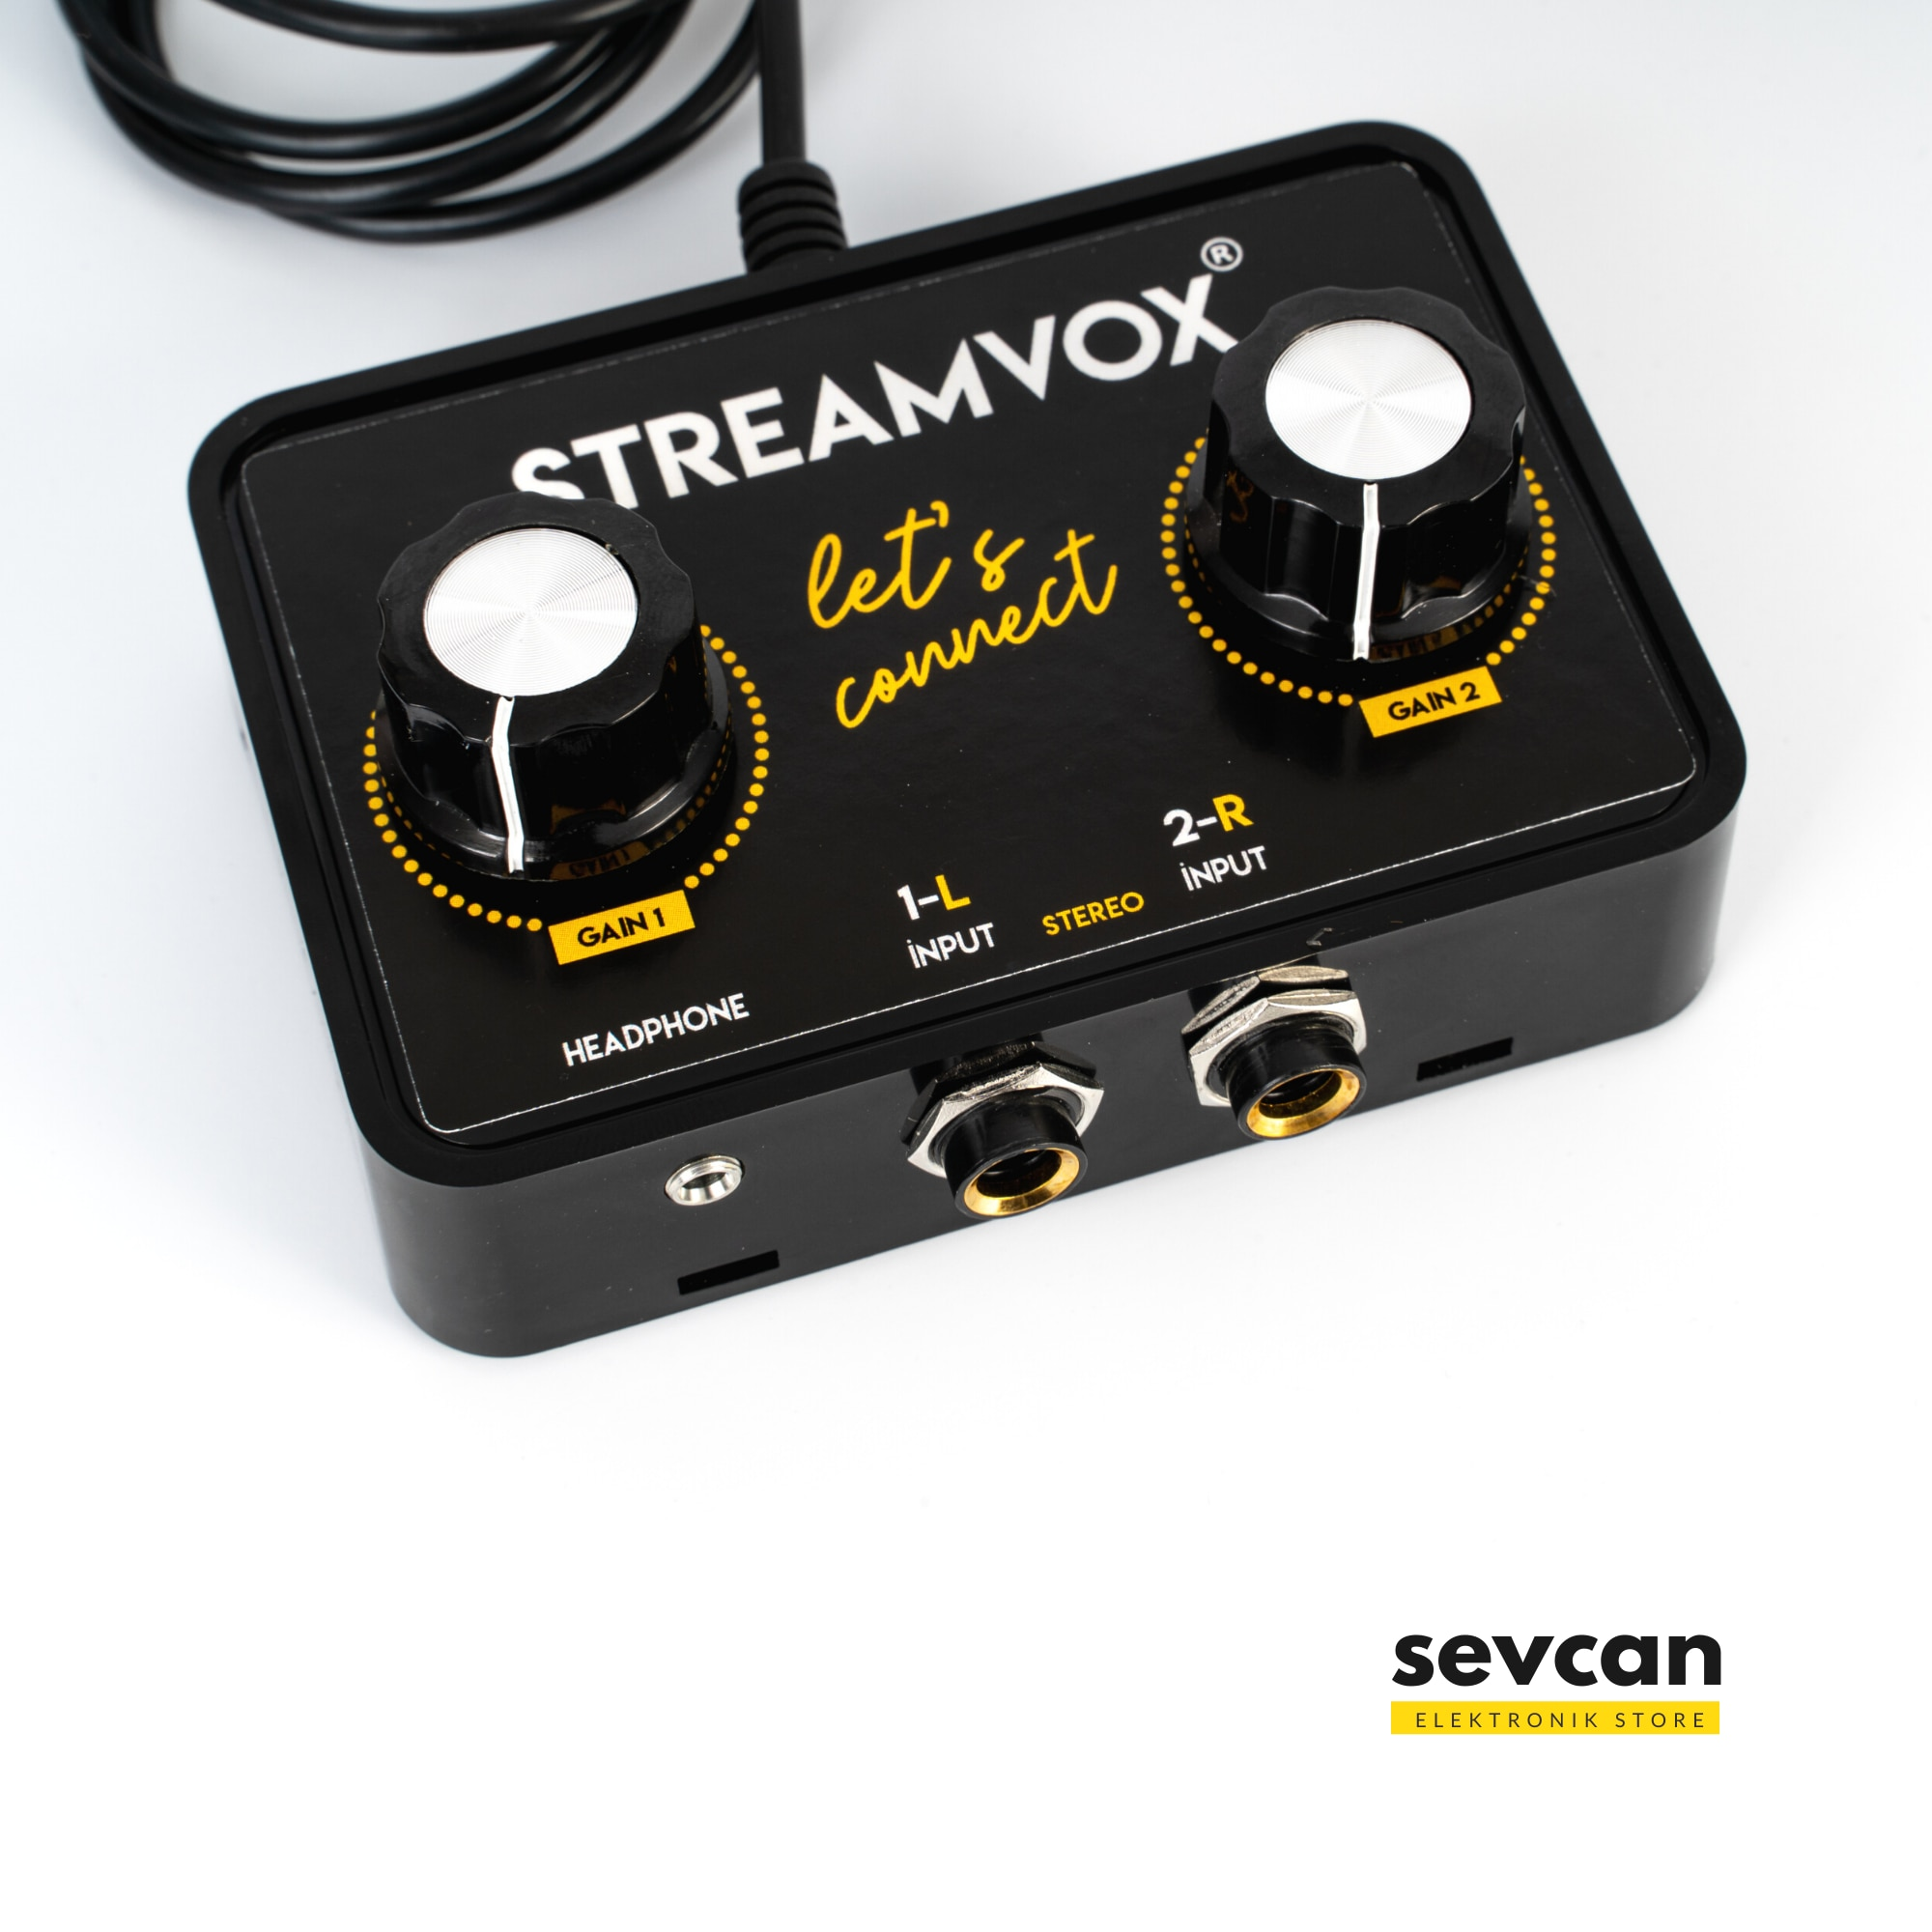 Streamvox Portable Audio Interface For Live Streaming Instagram Recording on All Phones & Tablet from Mixer Setup Sound Card SV3